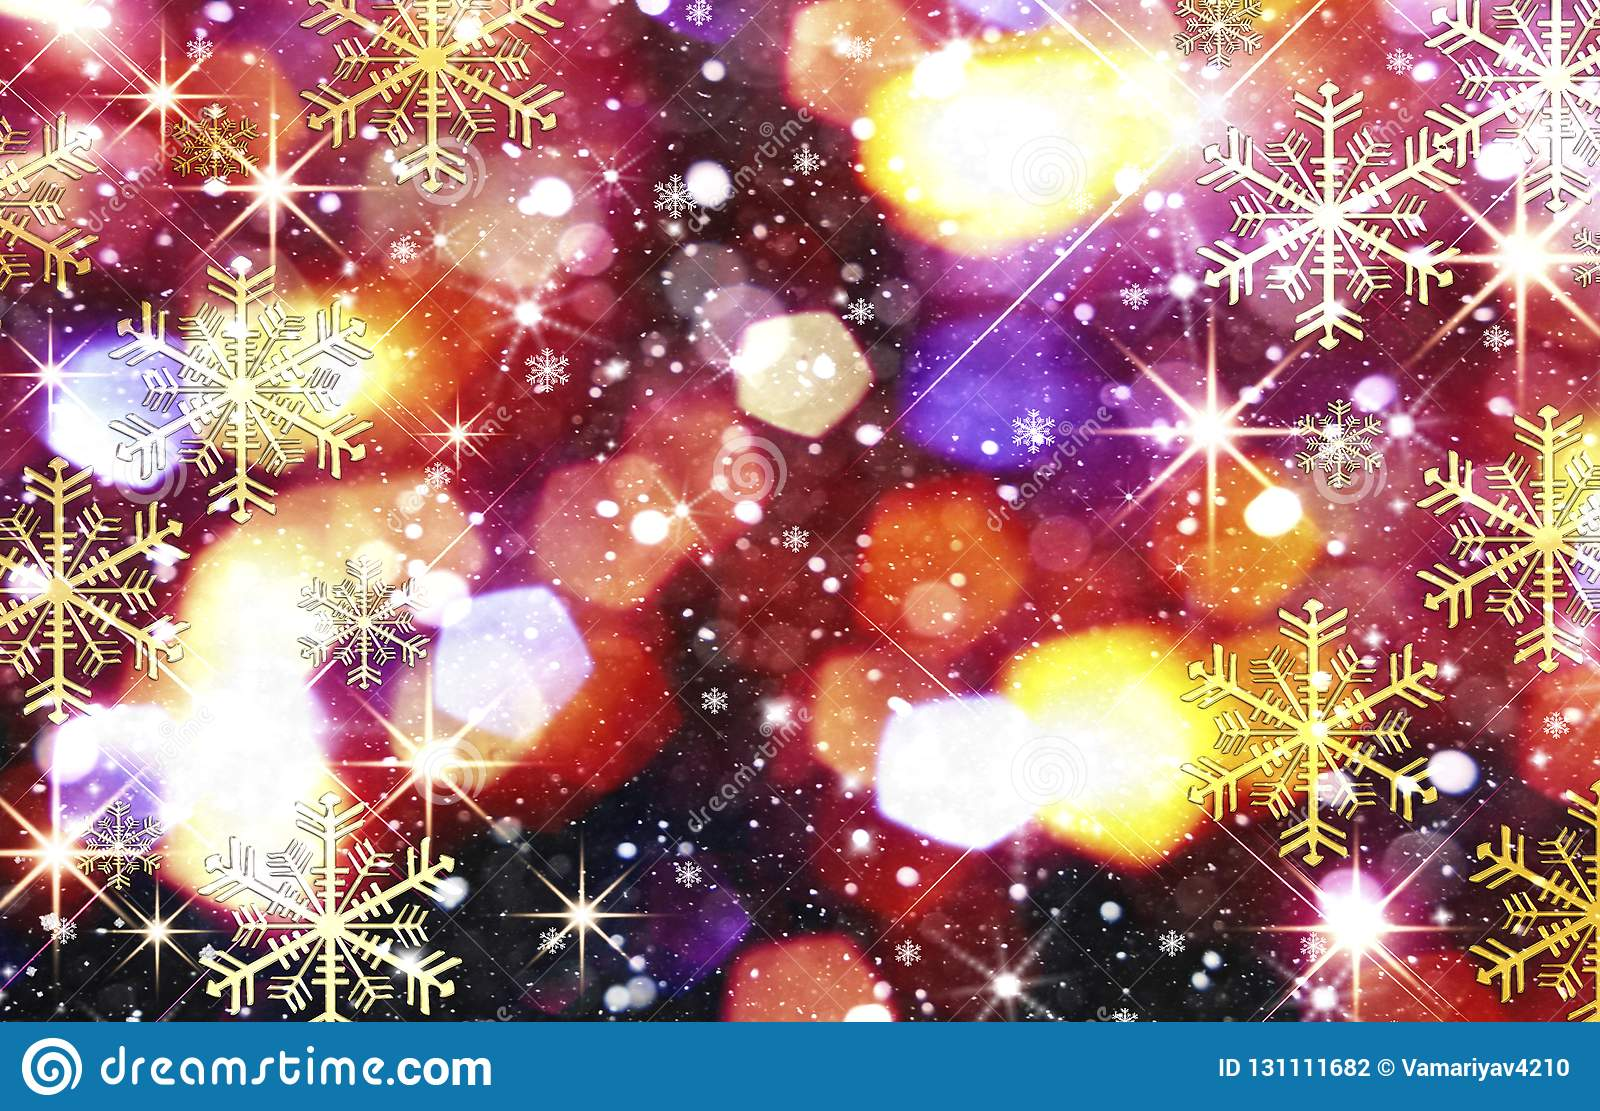 Colorful Christmas Background Design.Bright Colorful Christmas Background Blurred Background